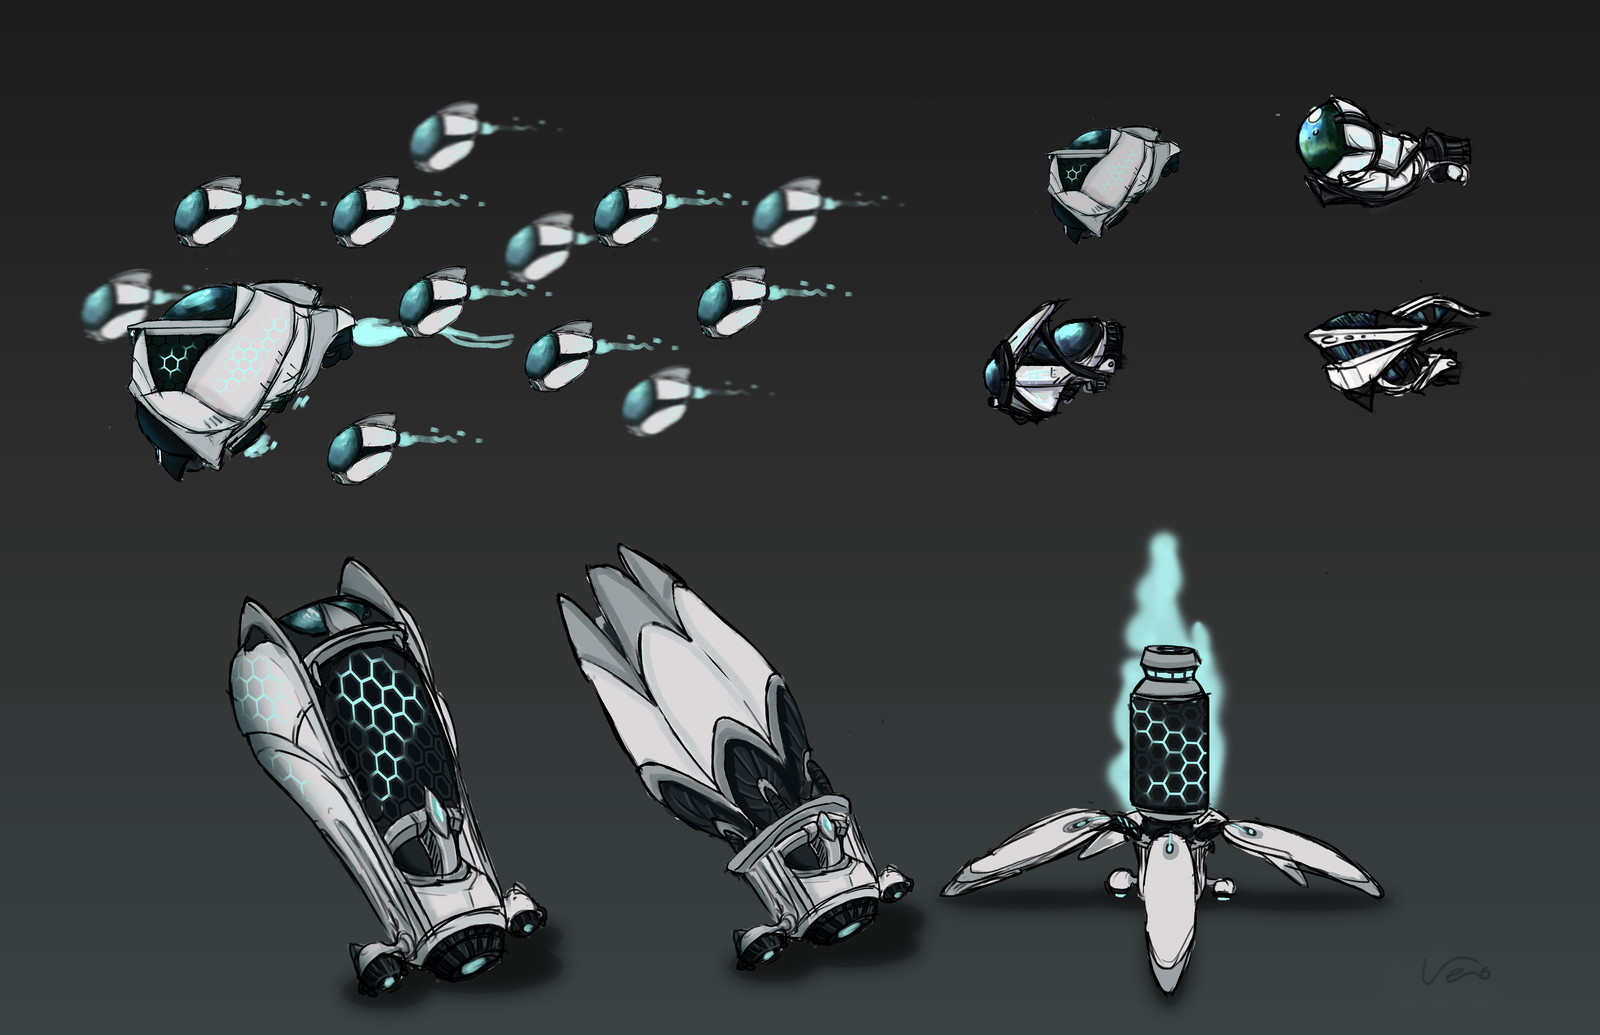 Before the big change. Old Swarm Robots concept.